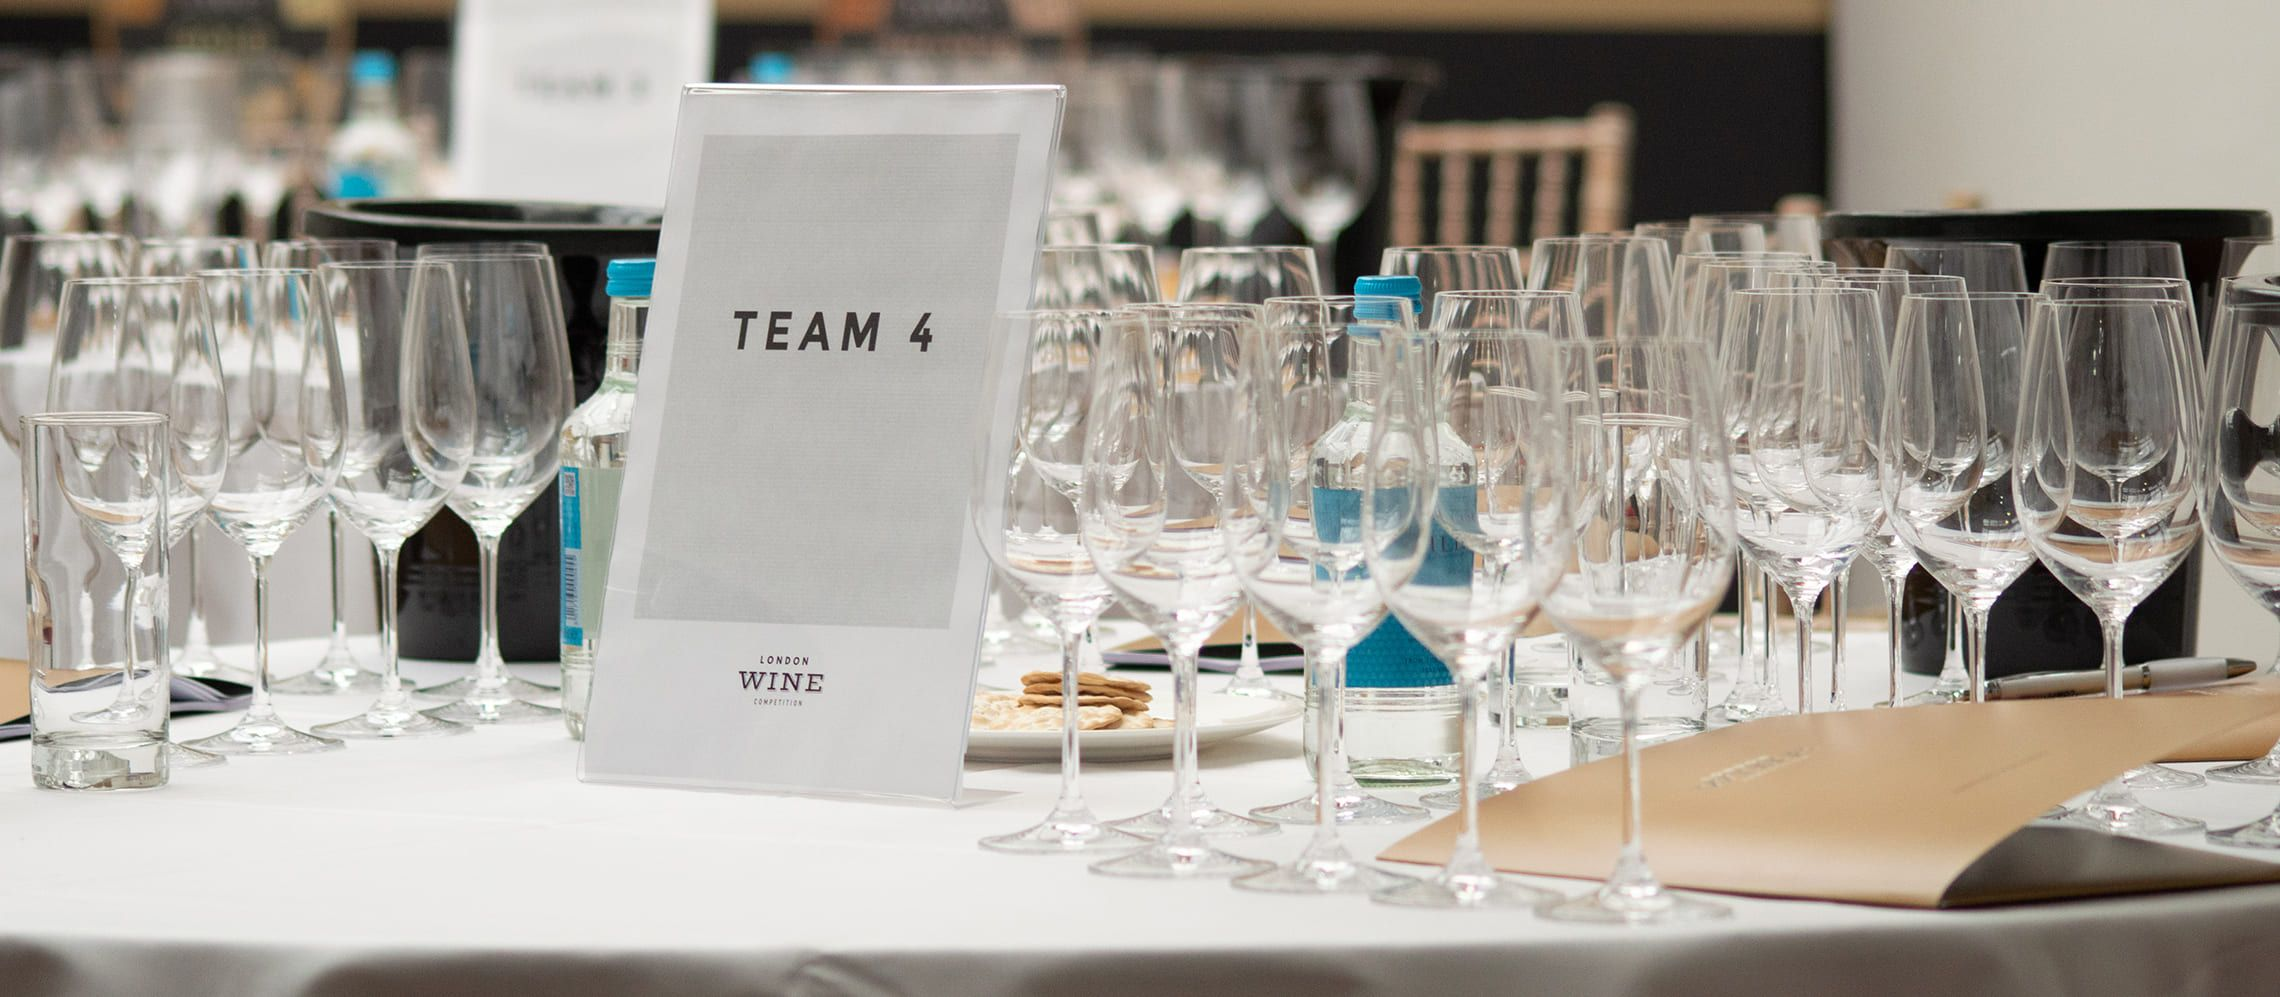 Photo for: A Peek Into One Of The World's Most Important Wine Competitions